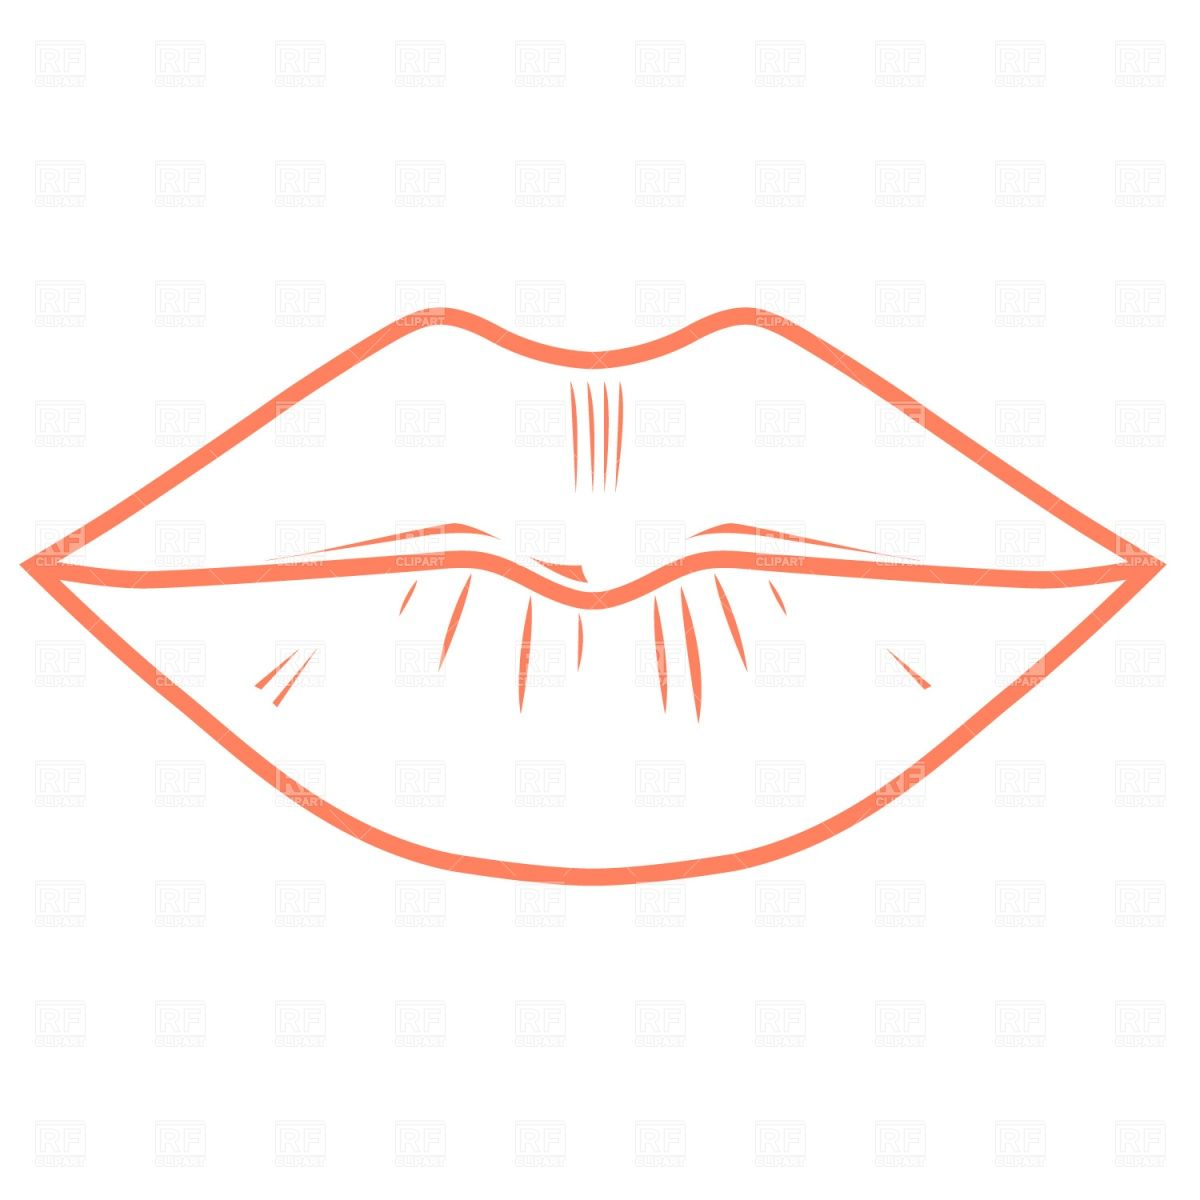 Sprinkles on the lips. Mouth clipart template